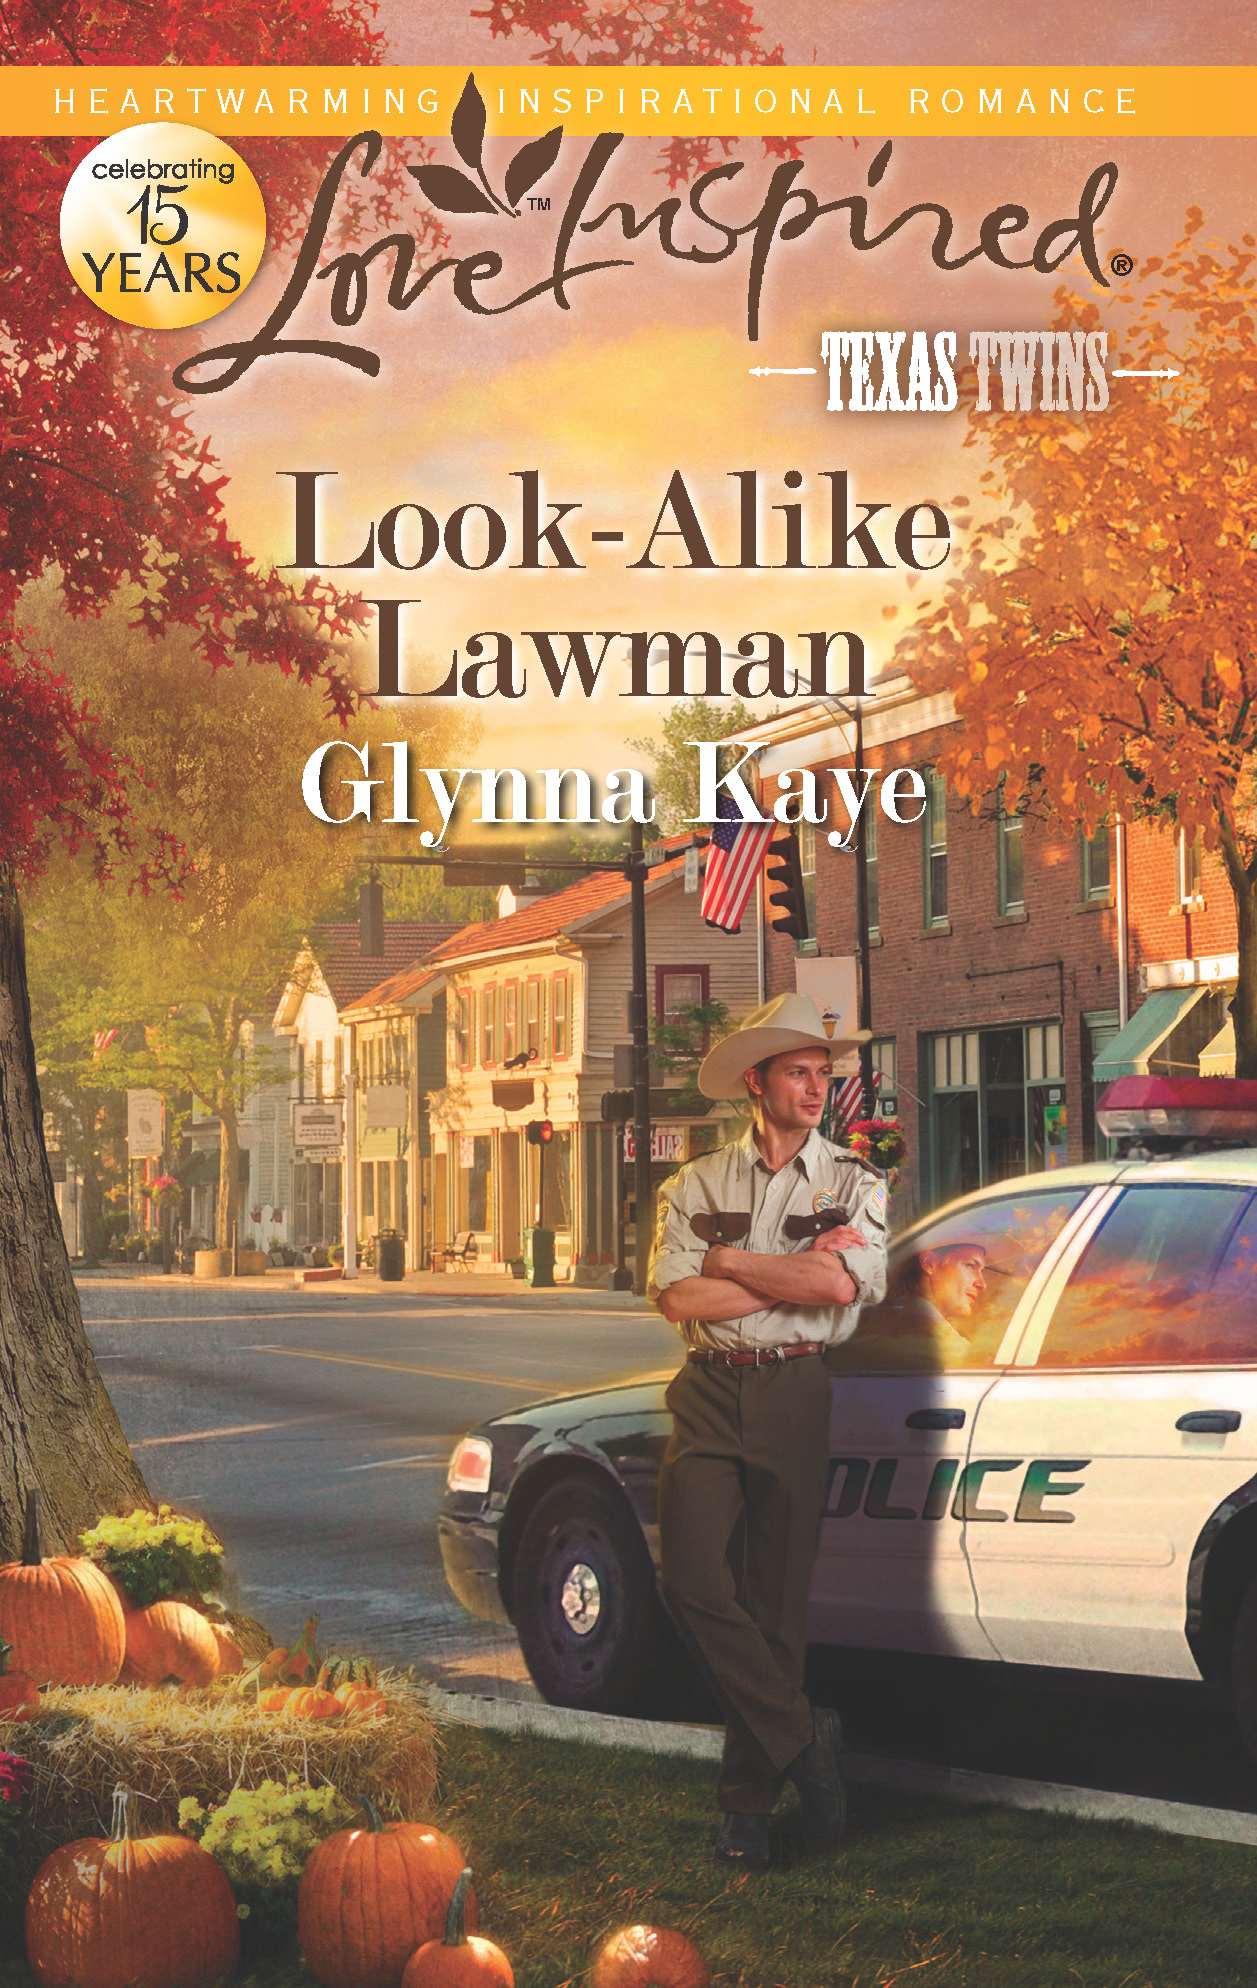 Look-Alike Lawman By: Glynna Kaye